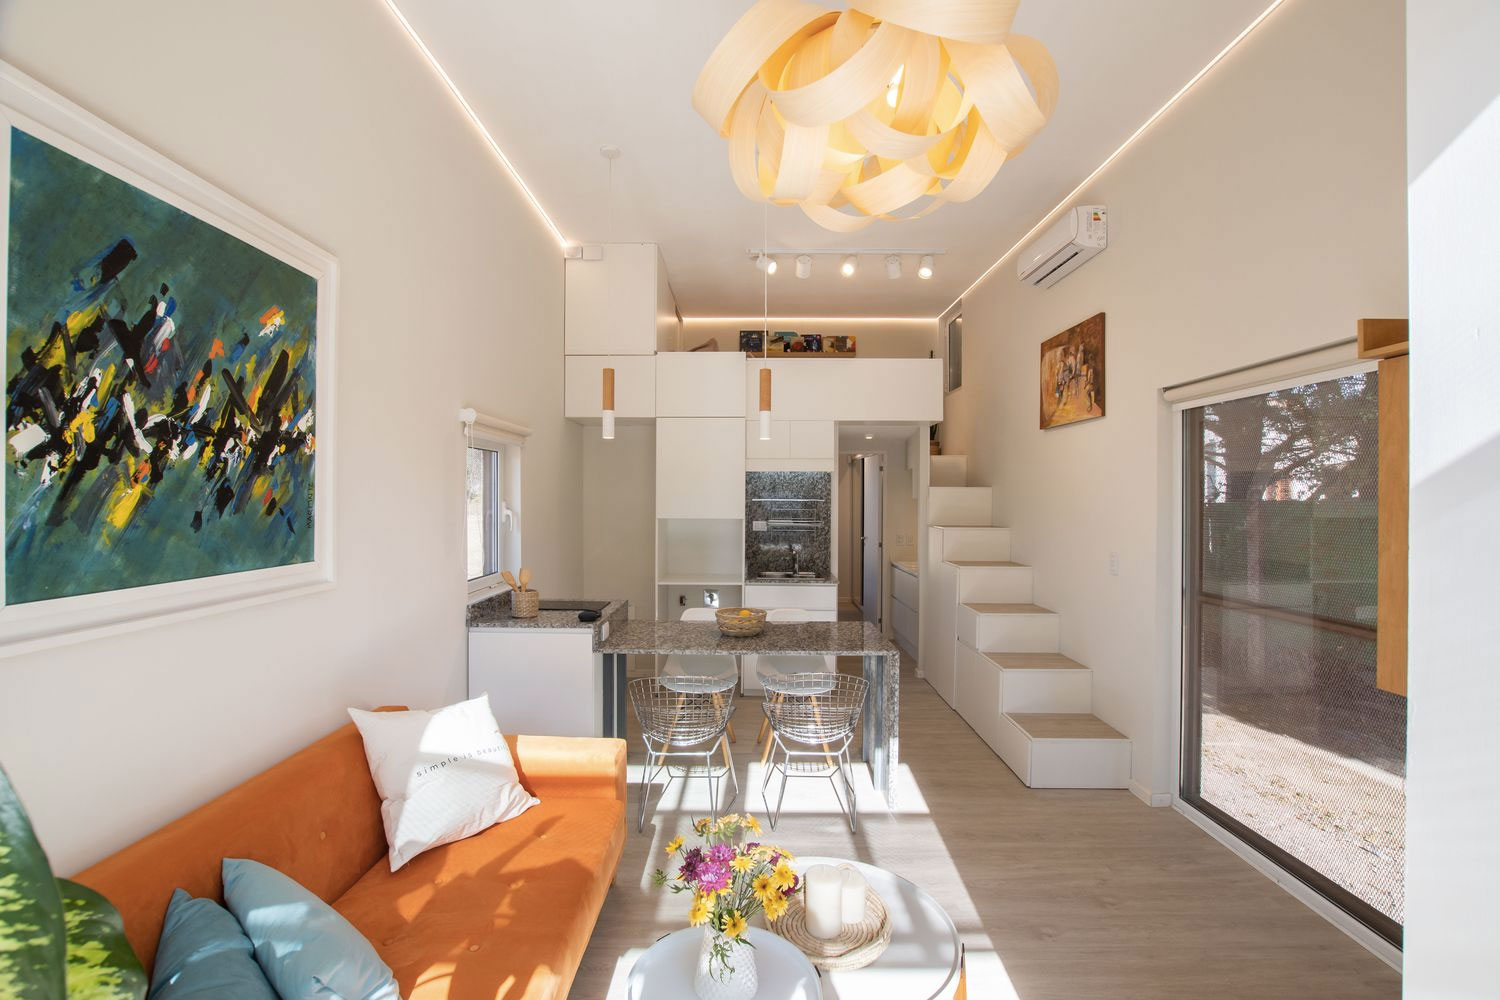 Hüga's open plan layout houses a kitchen, separate bathroom, mezzanine bedroom and an open living room